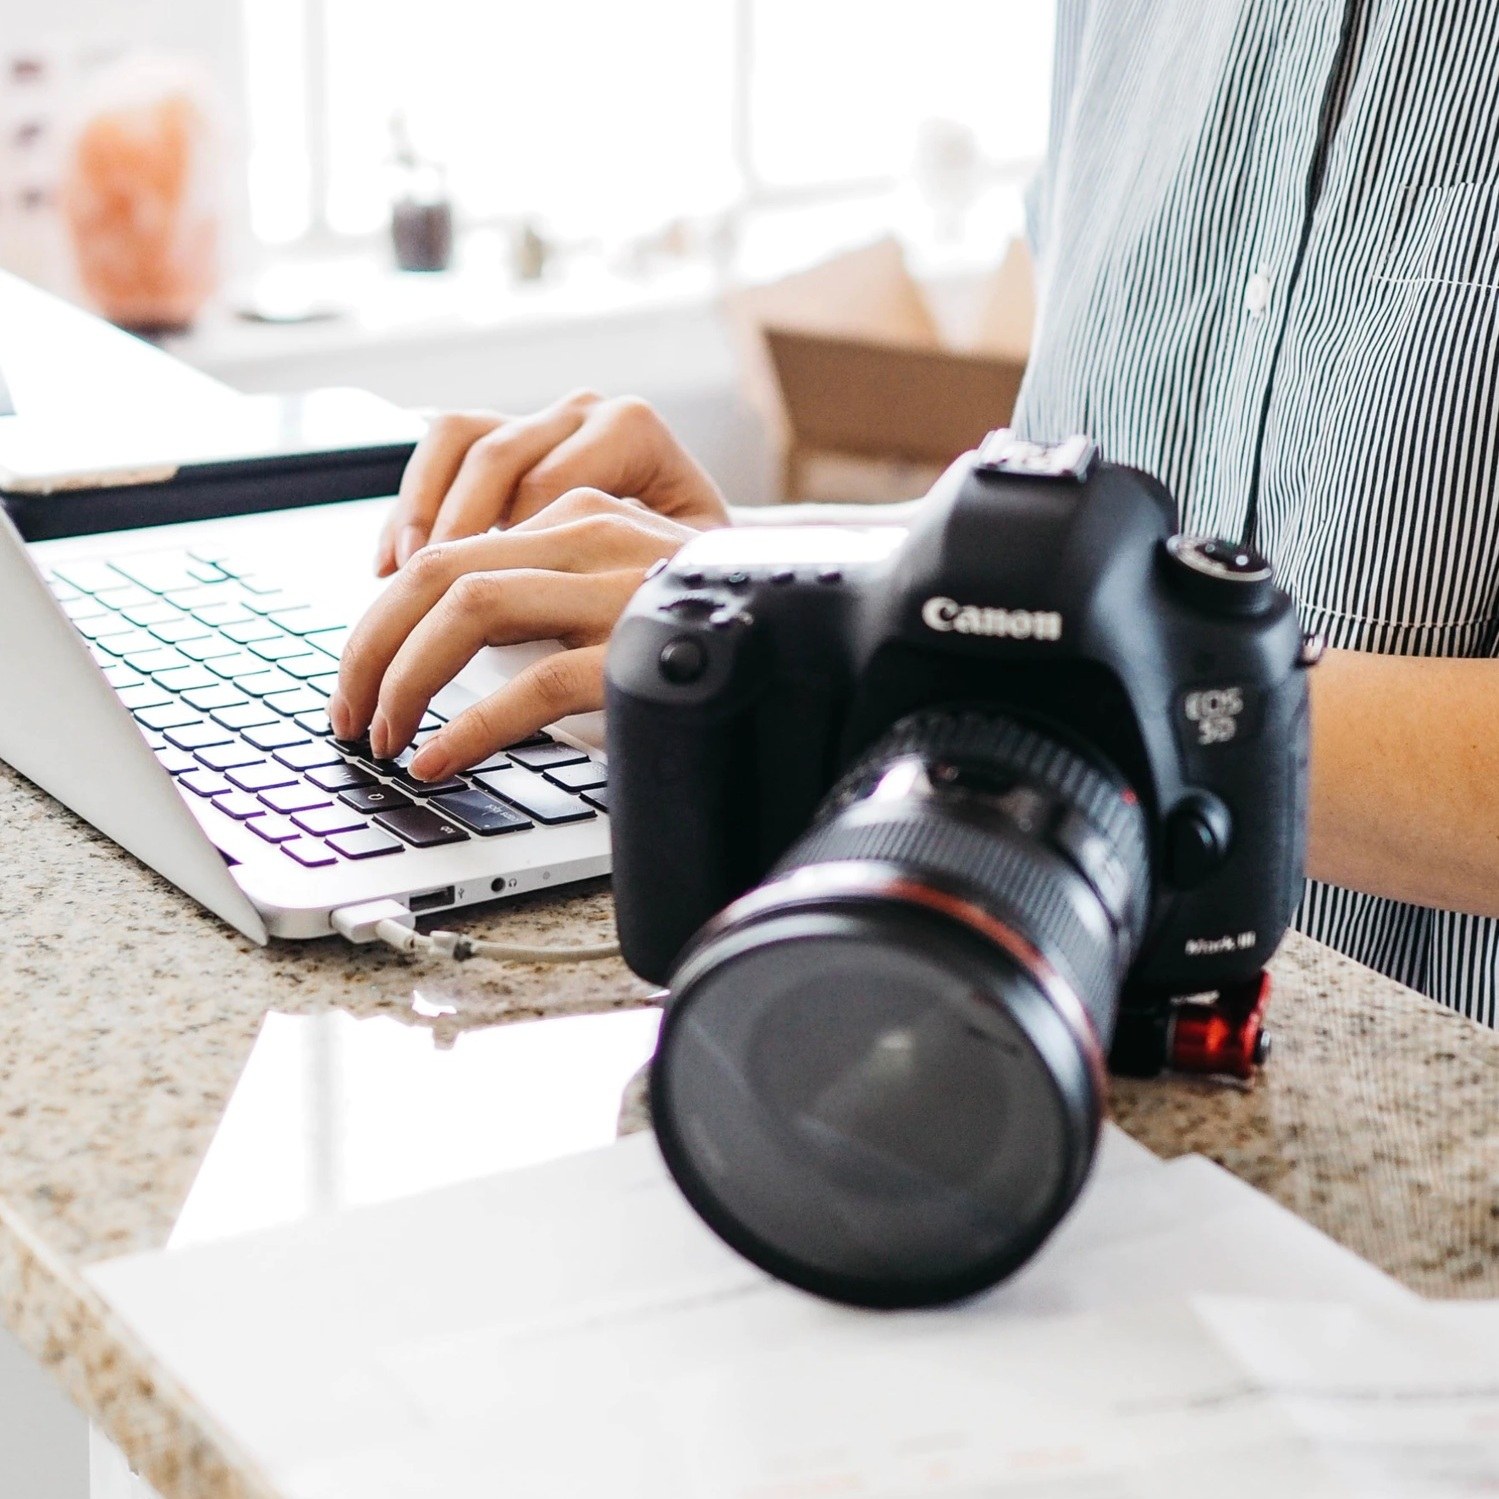 Free Stock Image Websites - Access compelling & professional Images.Our favourite stock image websites that my team and I access on a daily-basis for client projects.